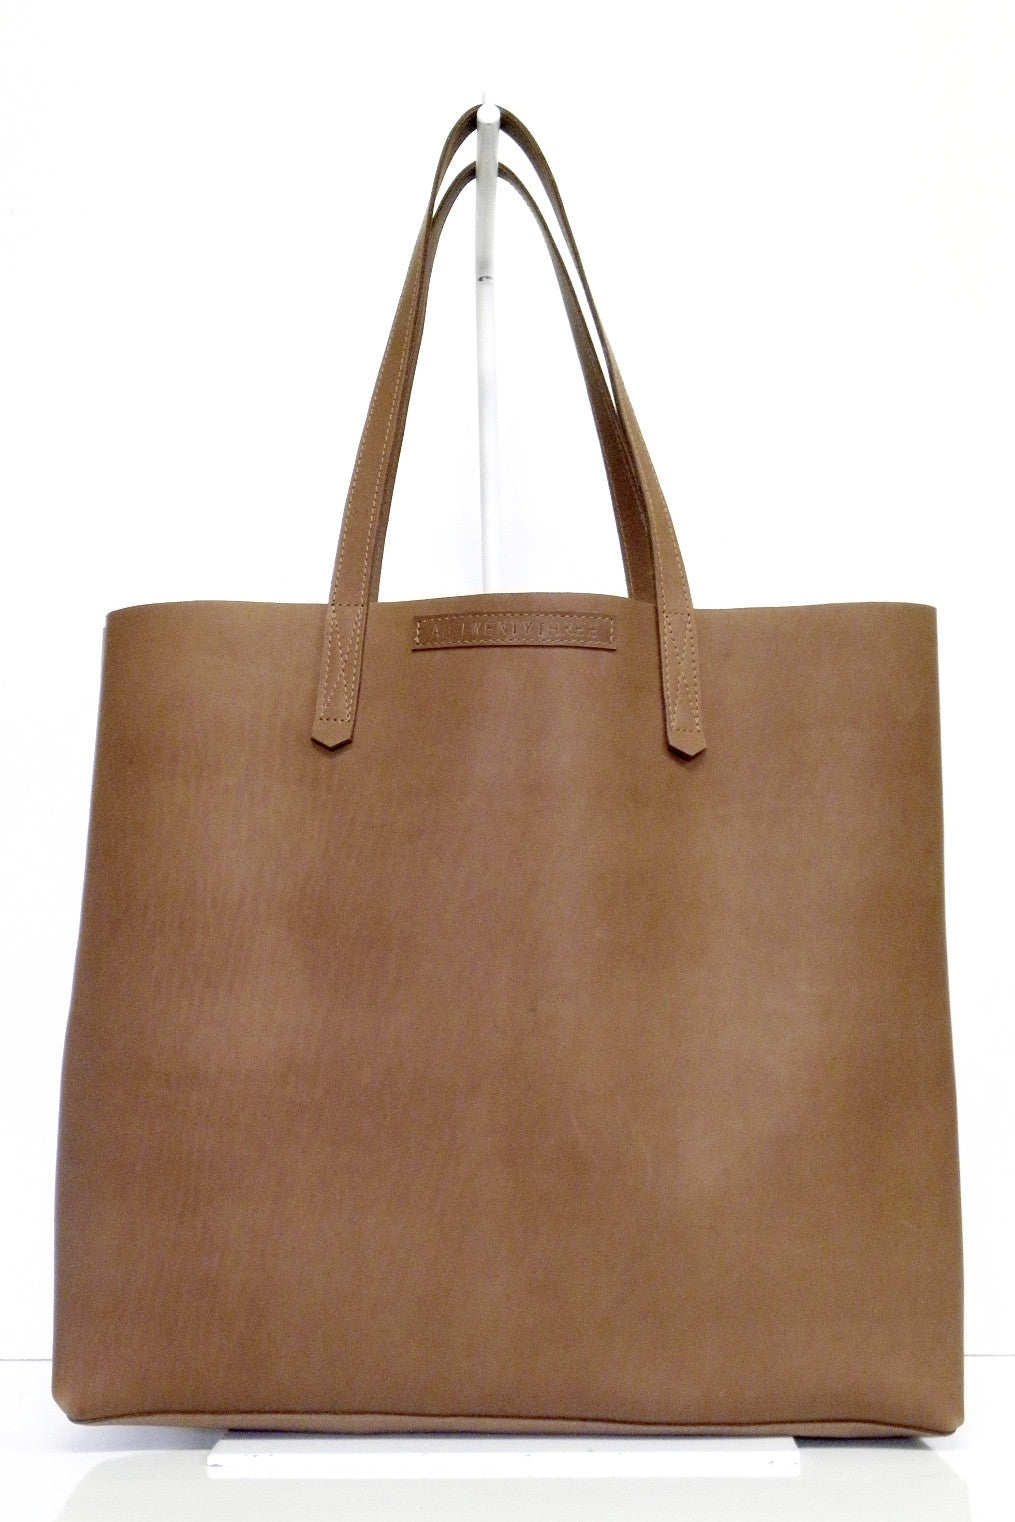 #23 Large Tote / Tobacco